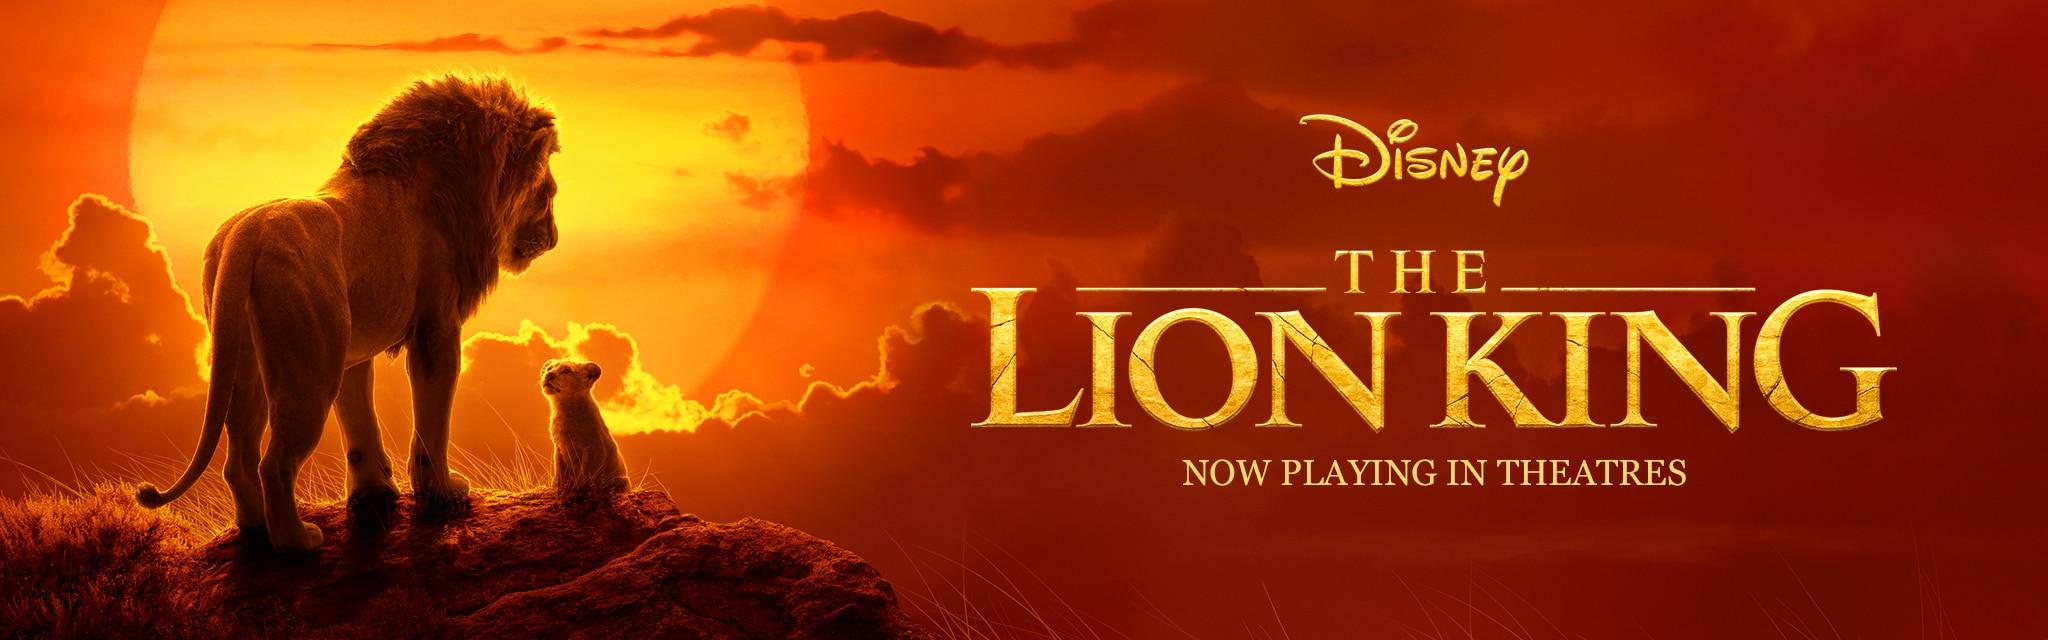 The Lion King Now Playing In Theaters